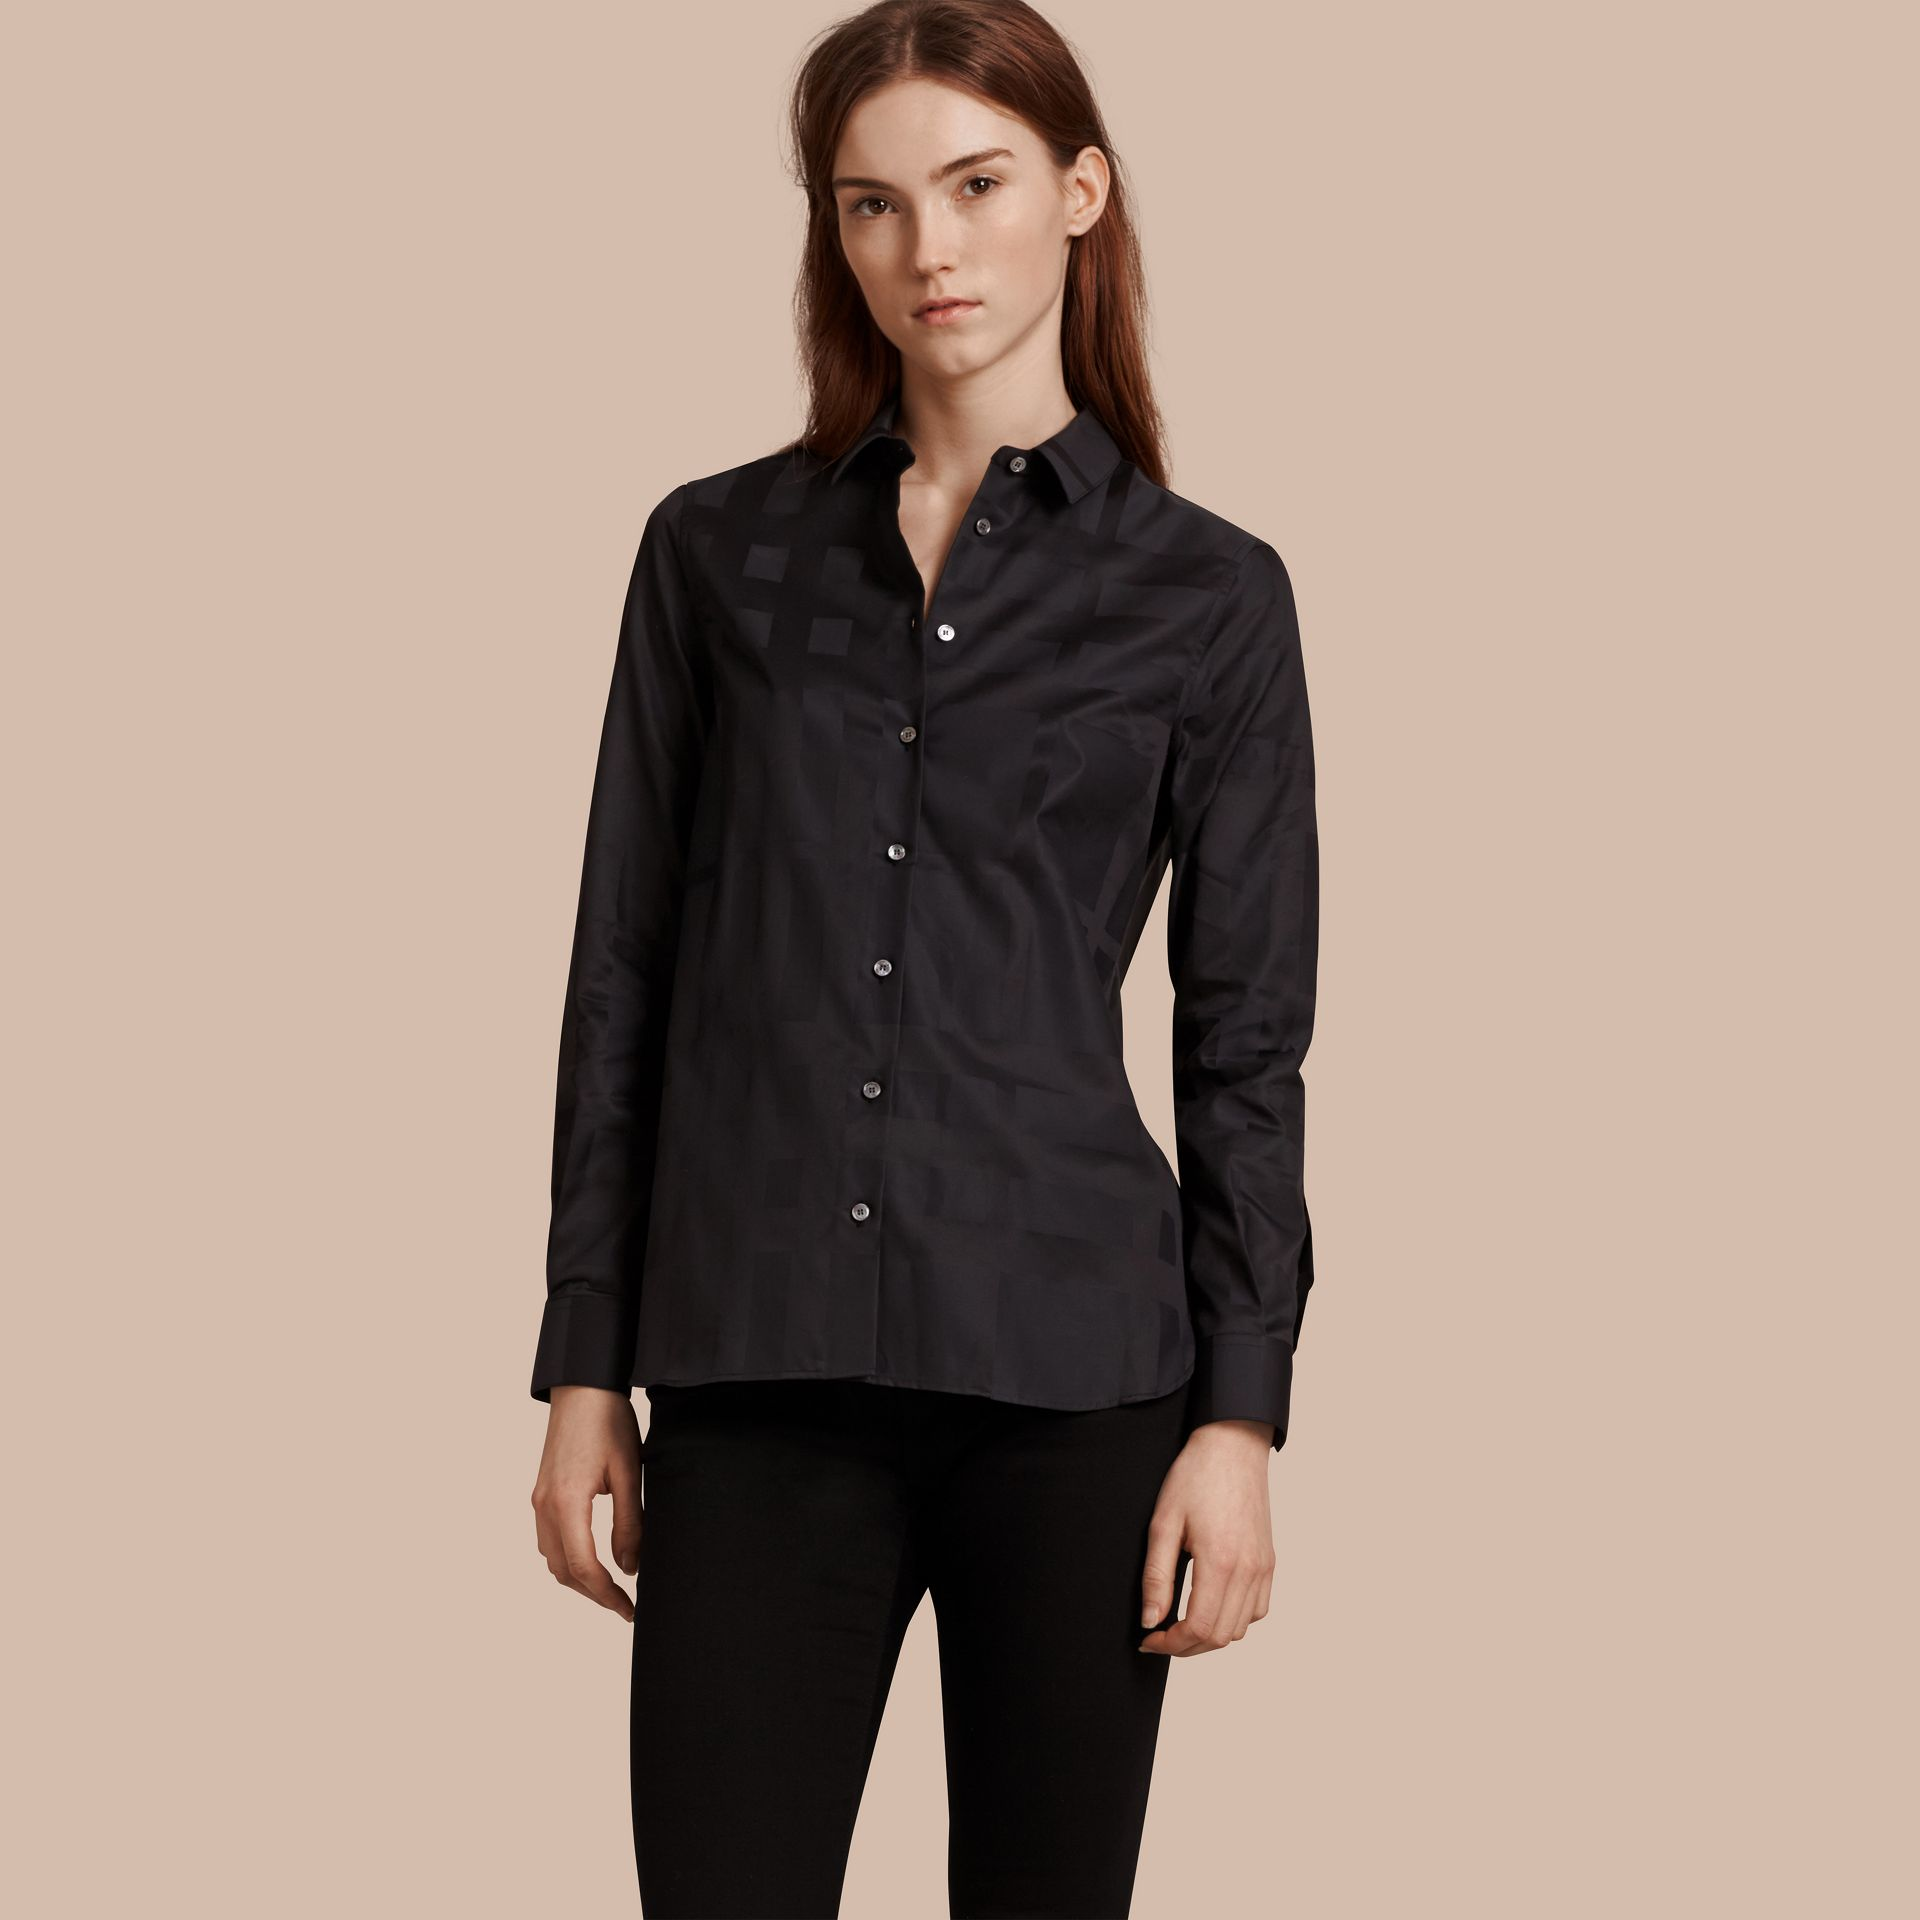 Check Jacquard Cotton Shirt in Black - Women | Burberry Australia - gallery image 1